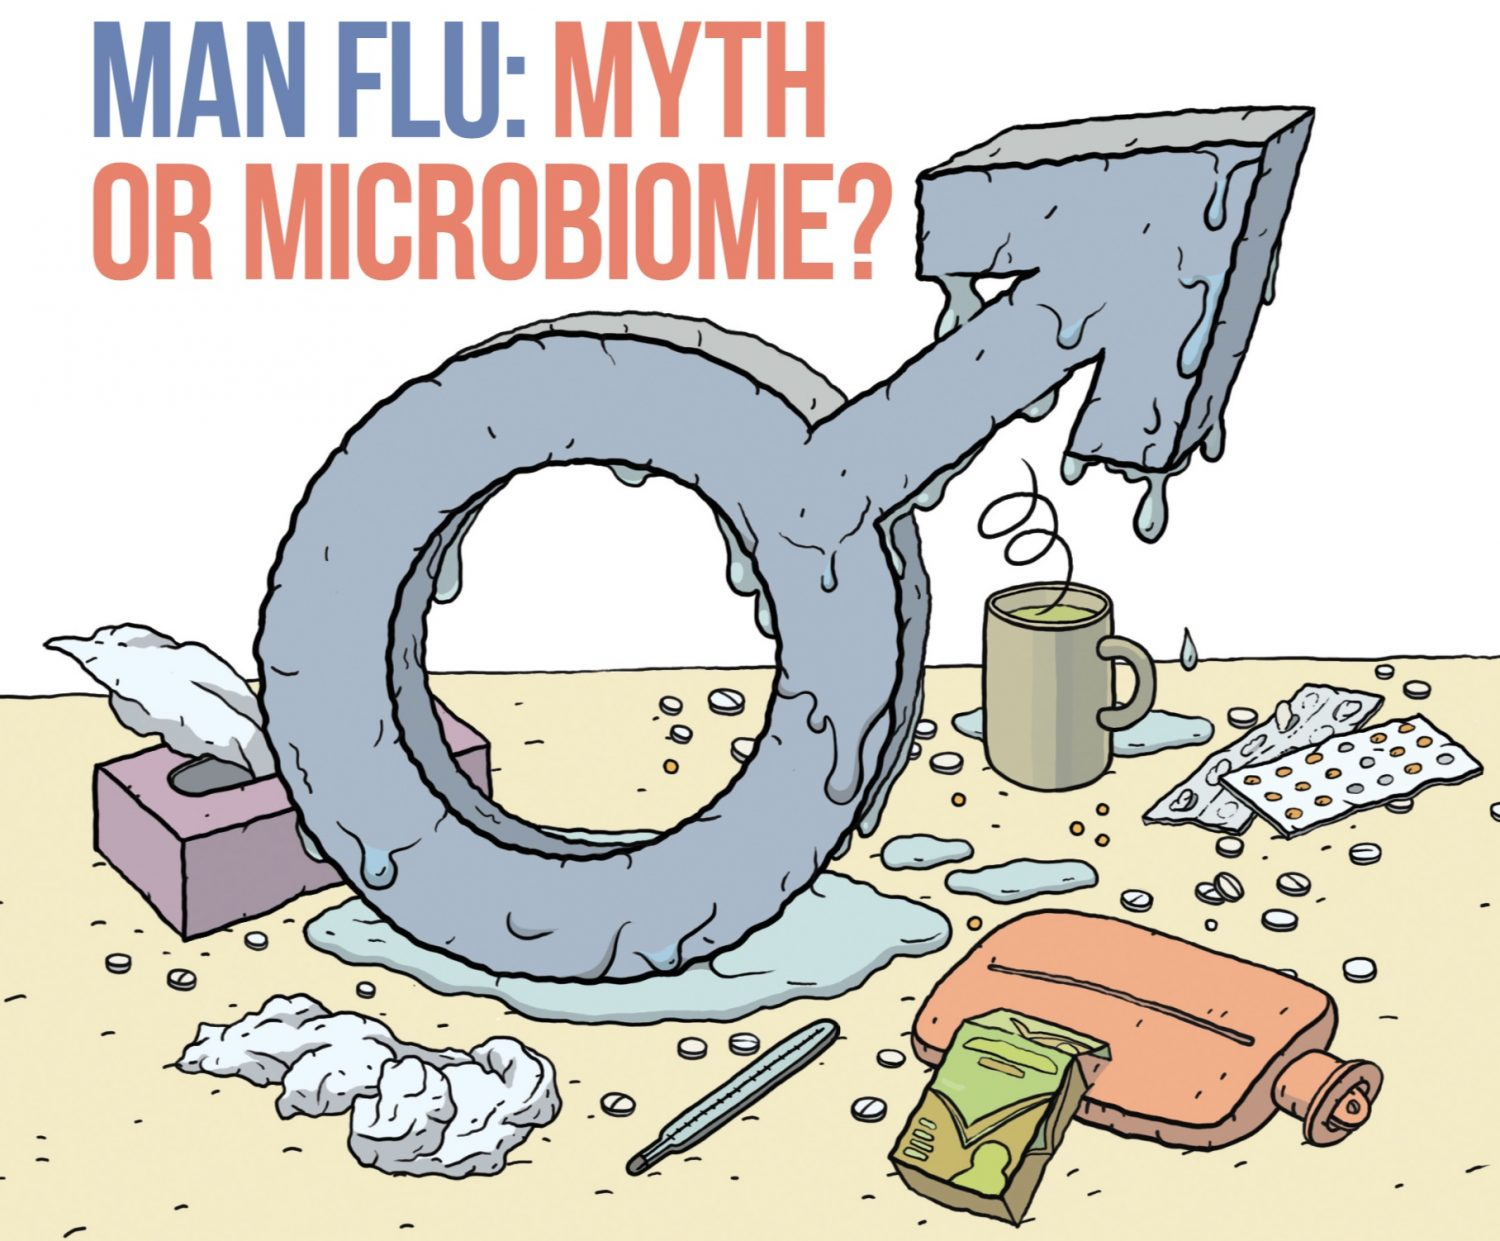 Man Flu: Myth or Microbiome?